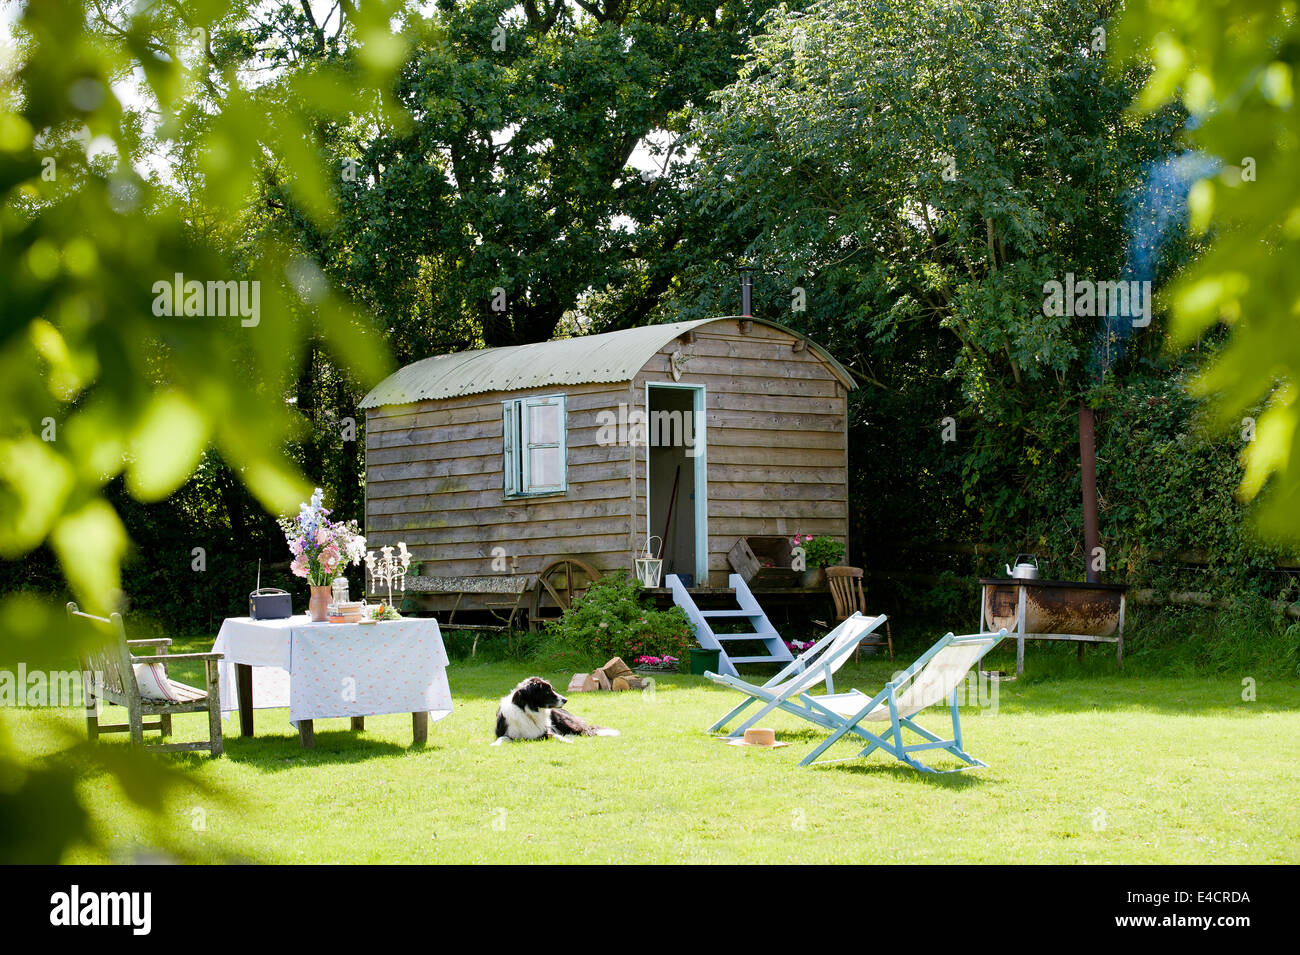 A homemade shepherds hut in an English country garden with deckchairs - Stock Image